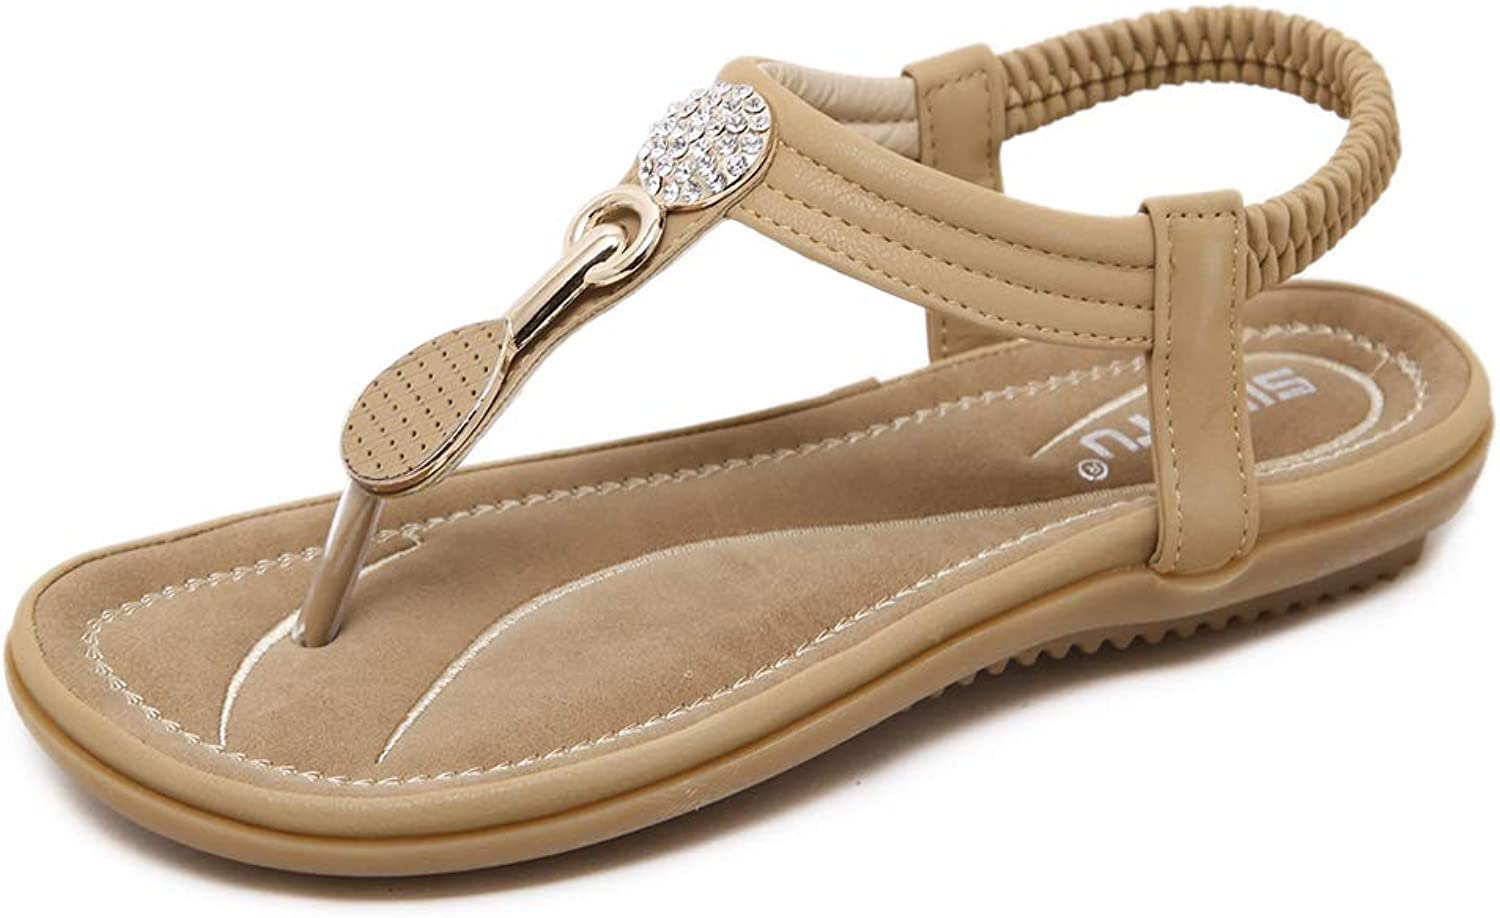 Navoku Women's Leather Jeweled Strap Sandles Thong Sandals